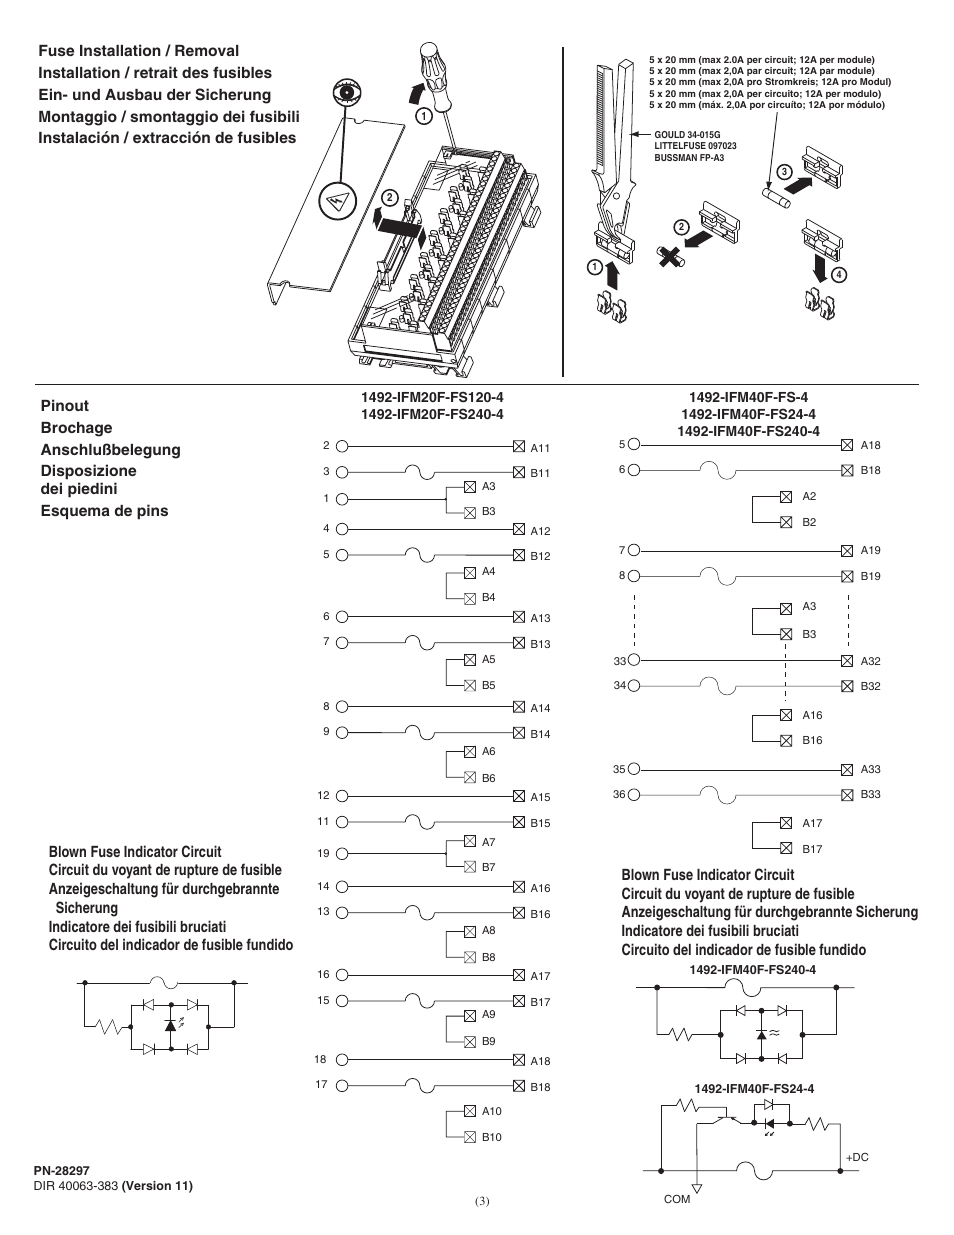 Wiring Diagram 1492-ifm40f-fs120-2 on cable harness diagram, audio cable diagram, cable transmission diagram, cable assembly diagram, ethernet cable diagram, cable design diagram, cable internet setup, cable block diagram, cross cable diagram, cable splitter diagram, low voltage diagram, cat cable diagram, cable connection diagram, cable pinout diagram, cable schematic diagram, cable connectors diagram, cable installation diagram, component cable diagram,